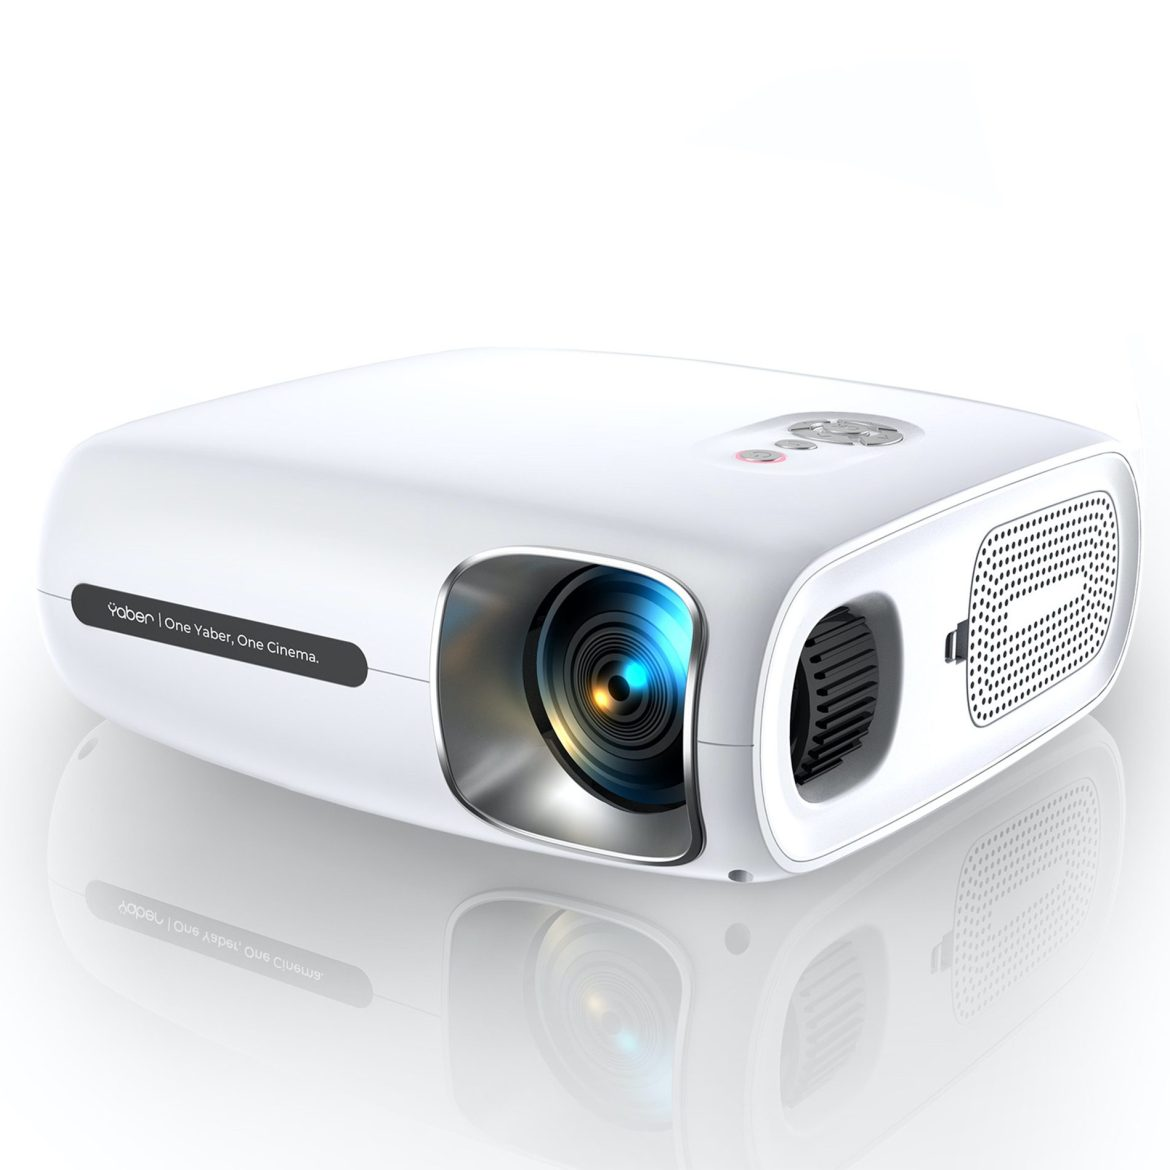 Introducing:  Yaber Pro V7 Advanced Projector